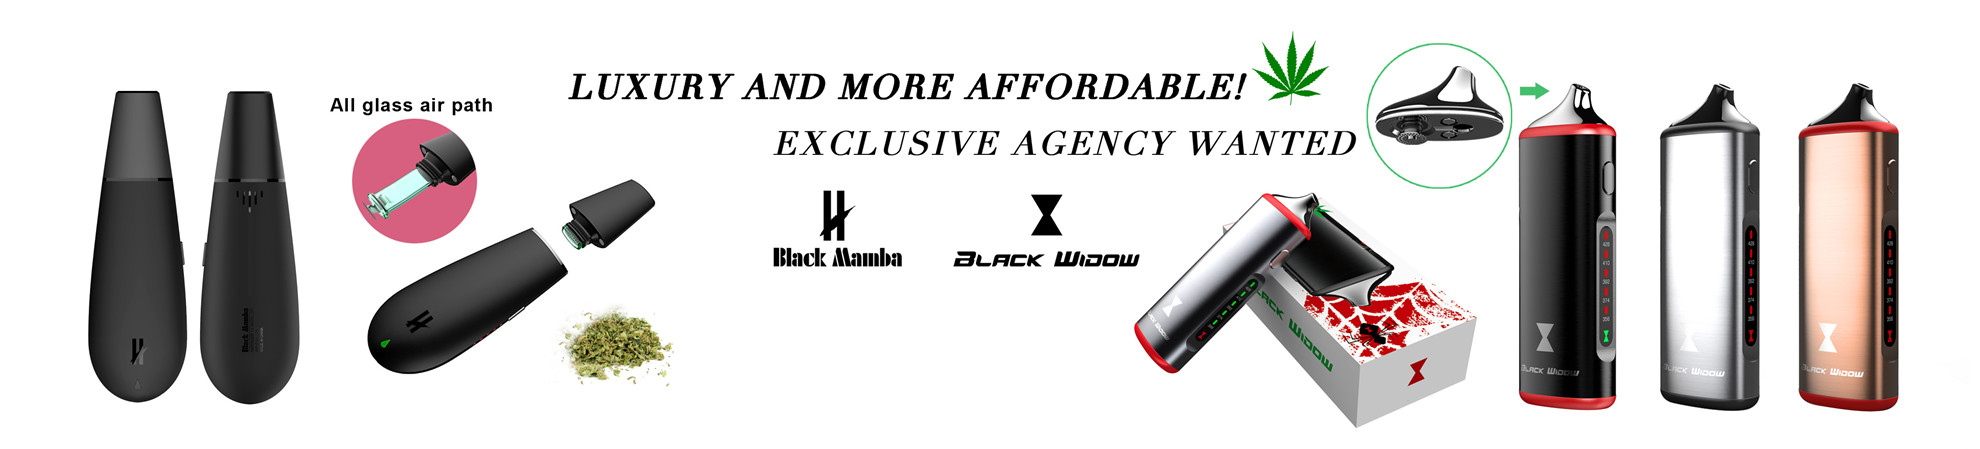 Exclusive agency wanted for Black widow and Black mamba vaporizer